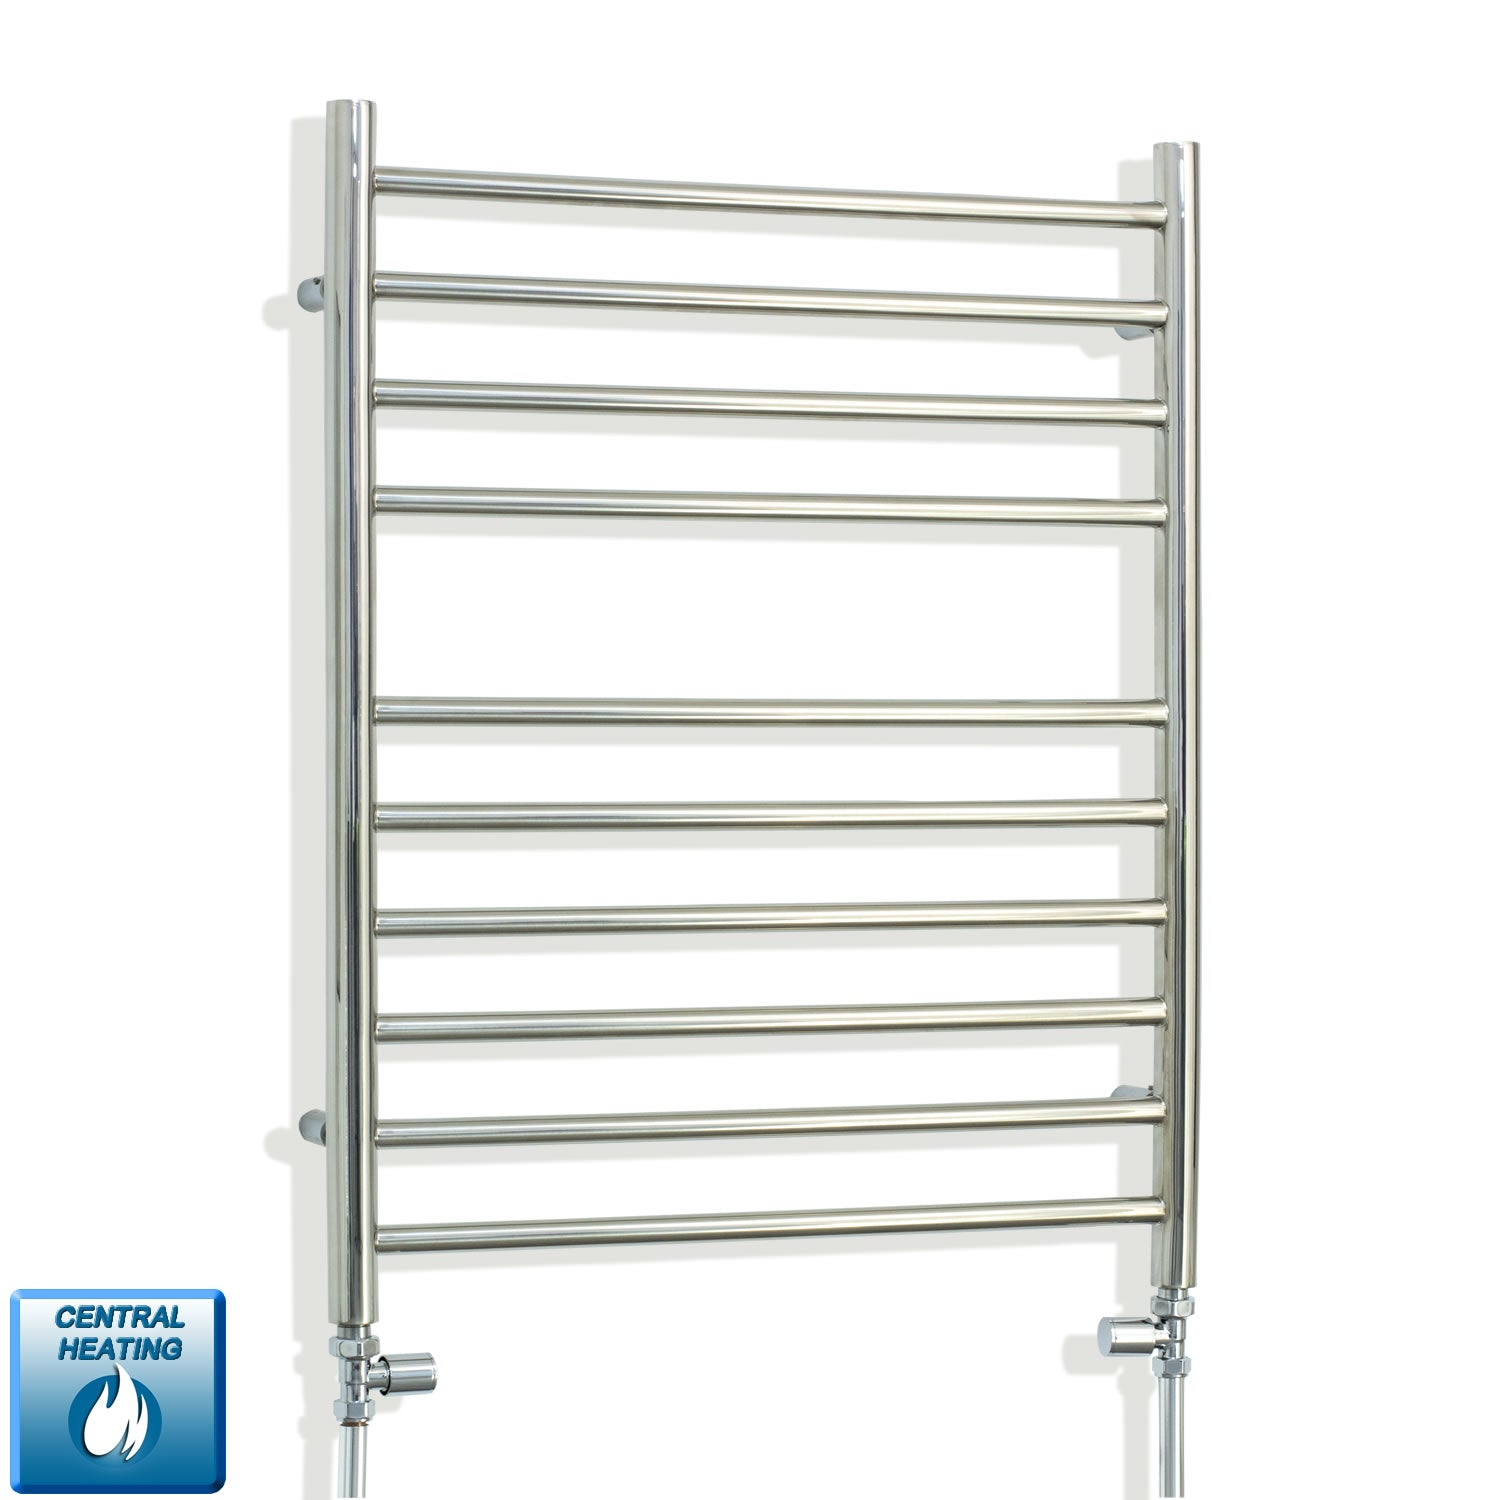 750 x 500 stainless steel towel rail radiator with straight inline valves pipes out of the floor